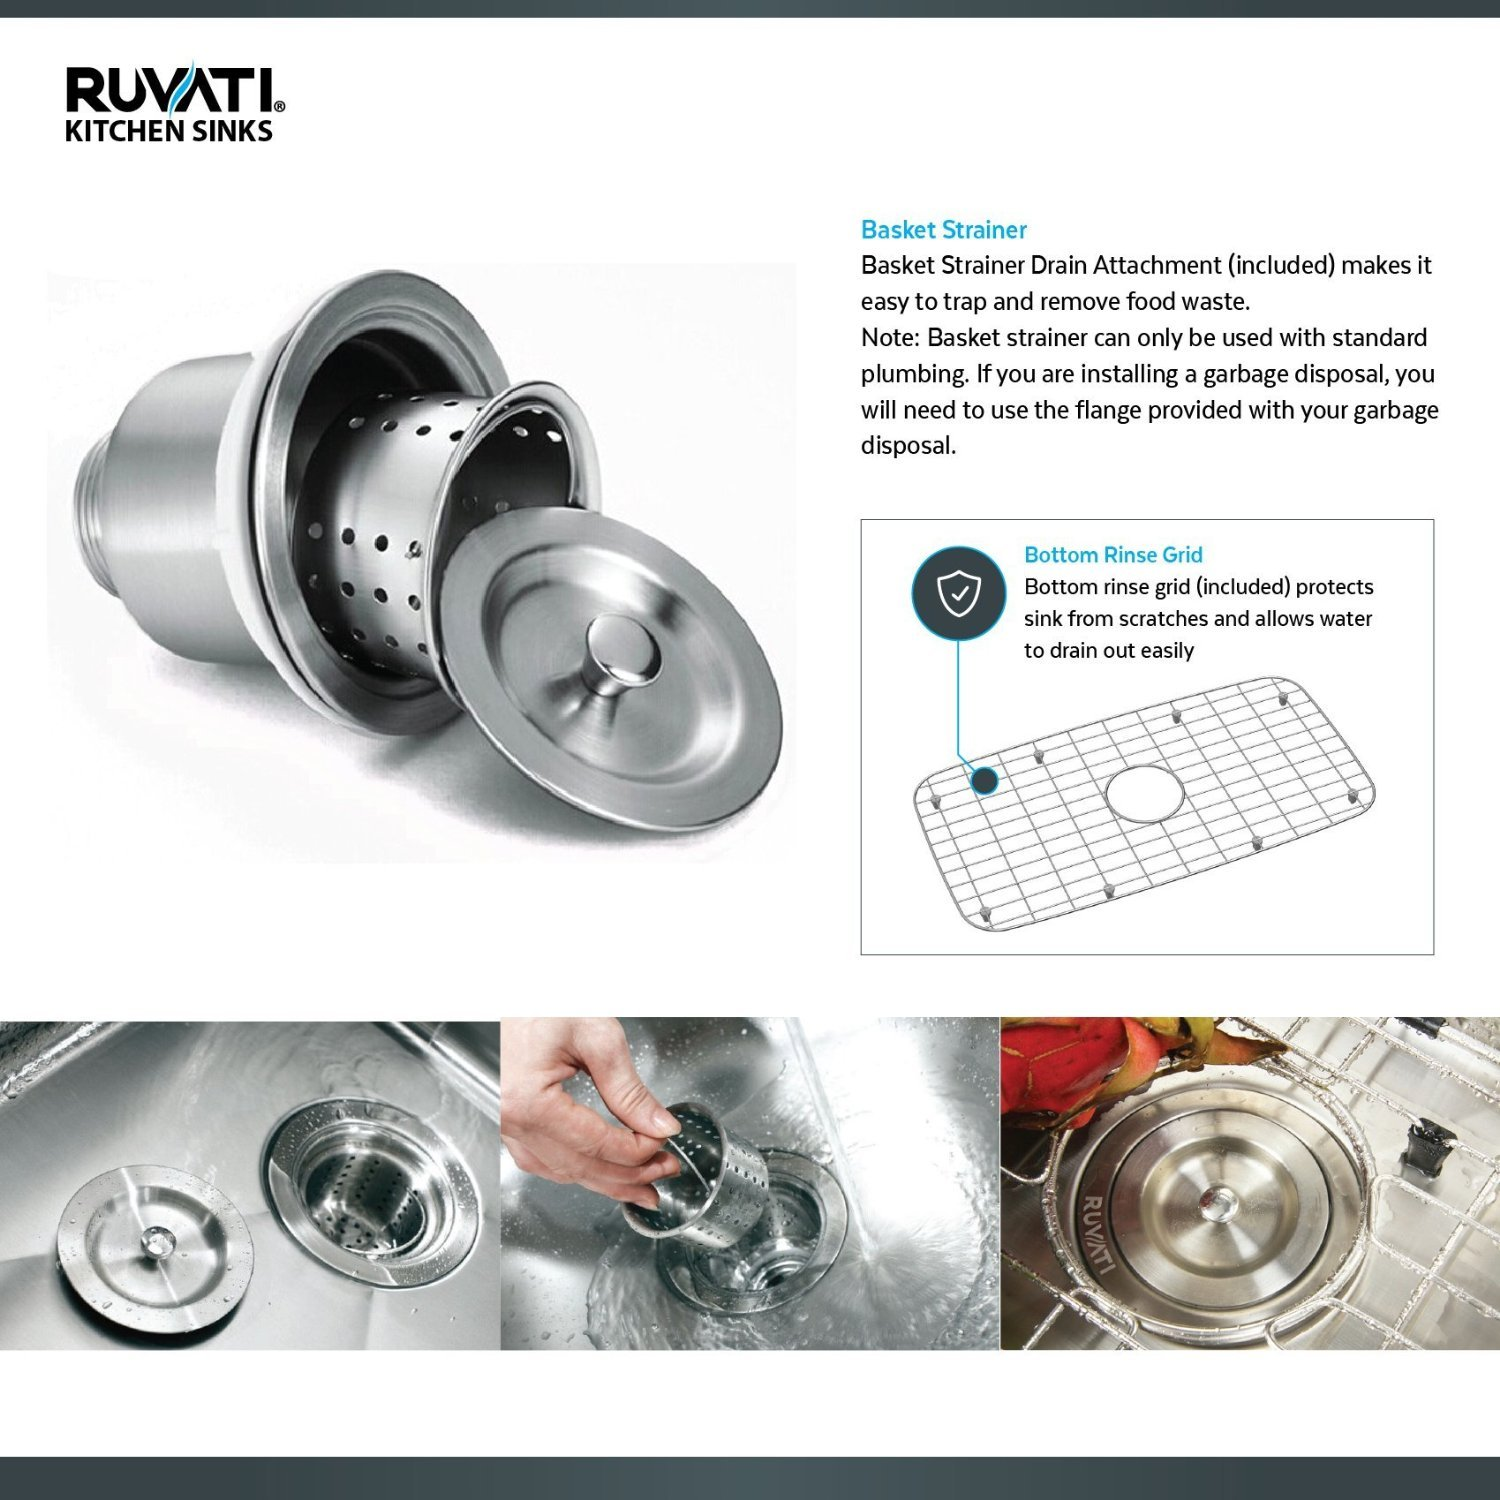 Ruvati 15 x 20 inch Drop-in Topmount Bar Prep Sink 16 Gauge Stainless Steel Single Bowl - RVH8110 by Ruvati (Image #8)